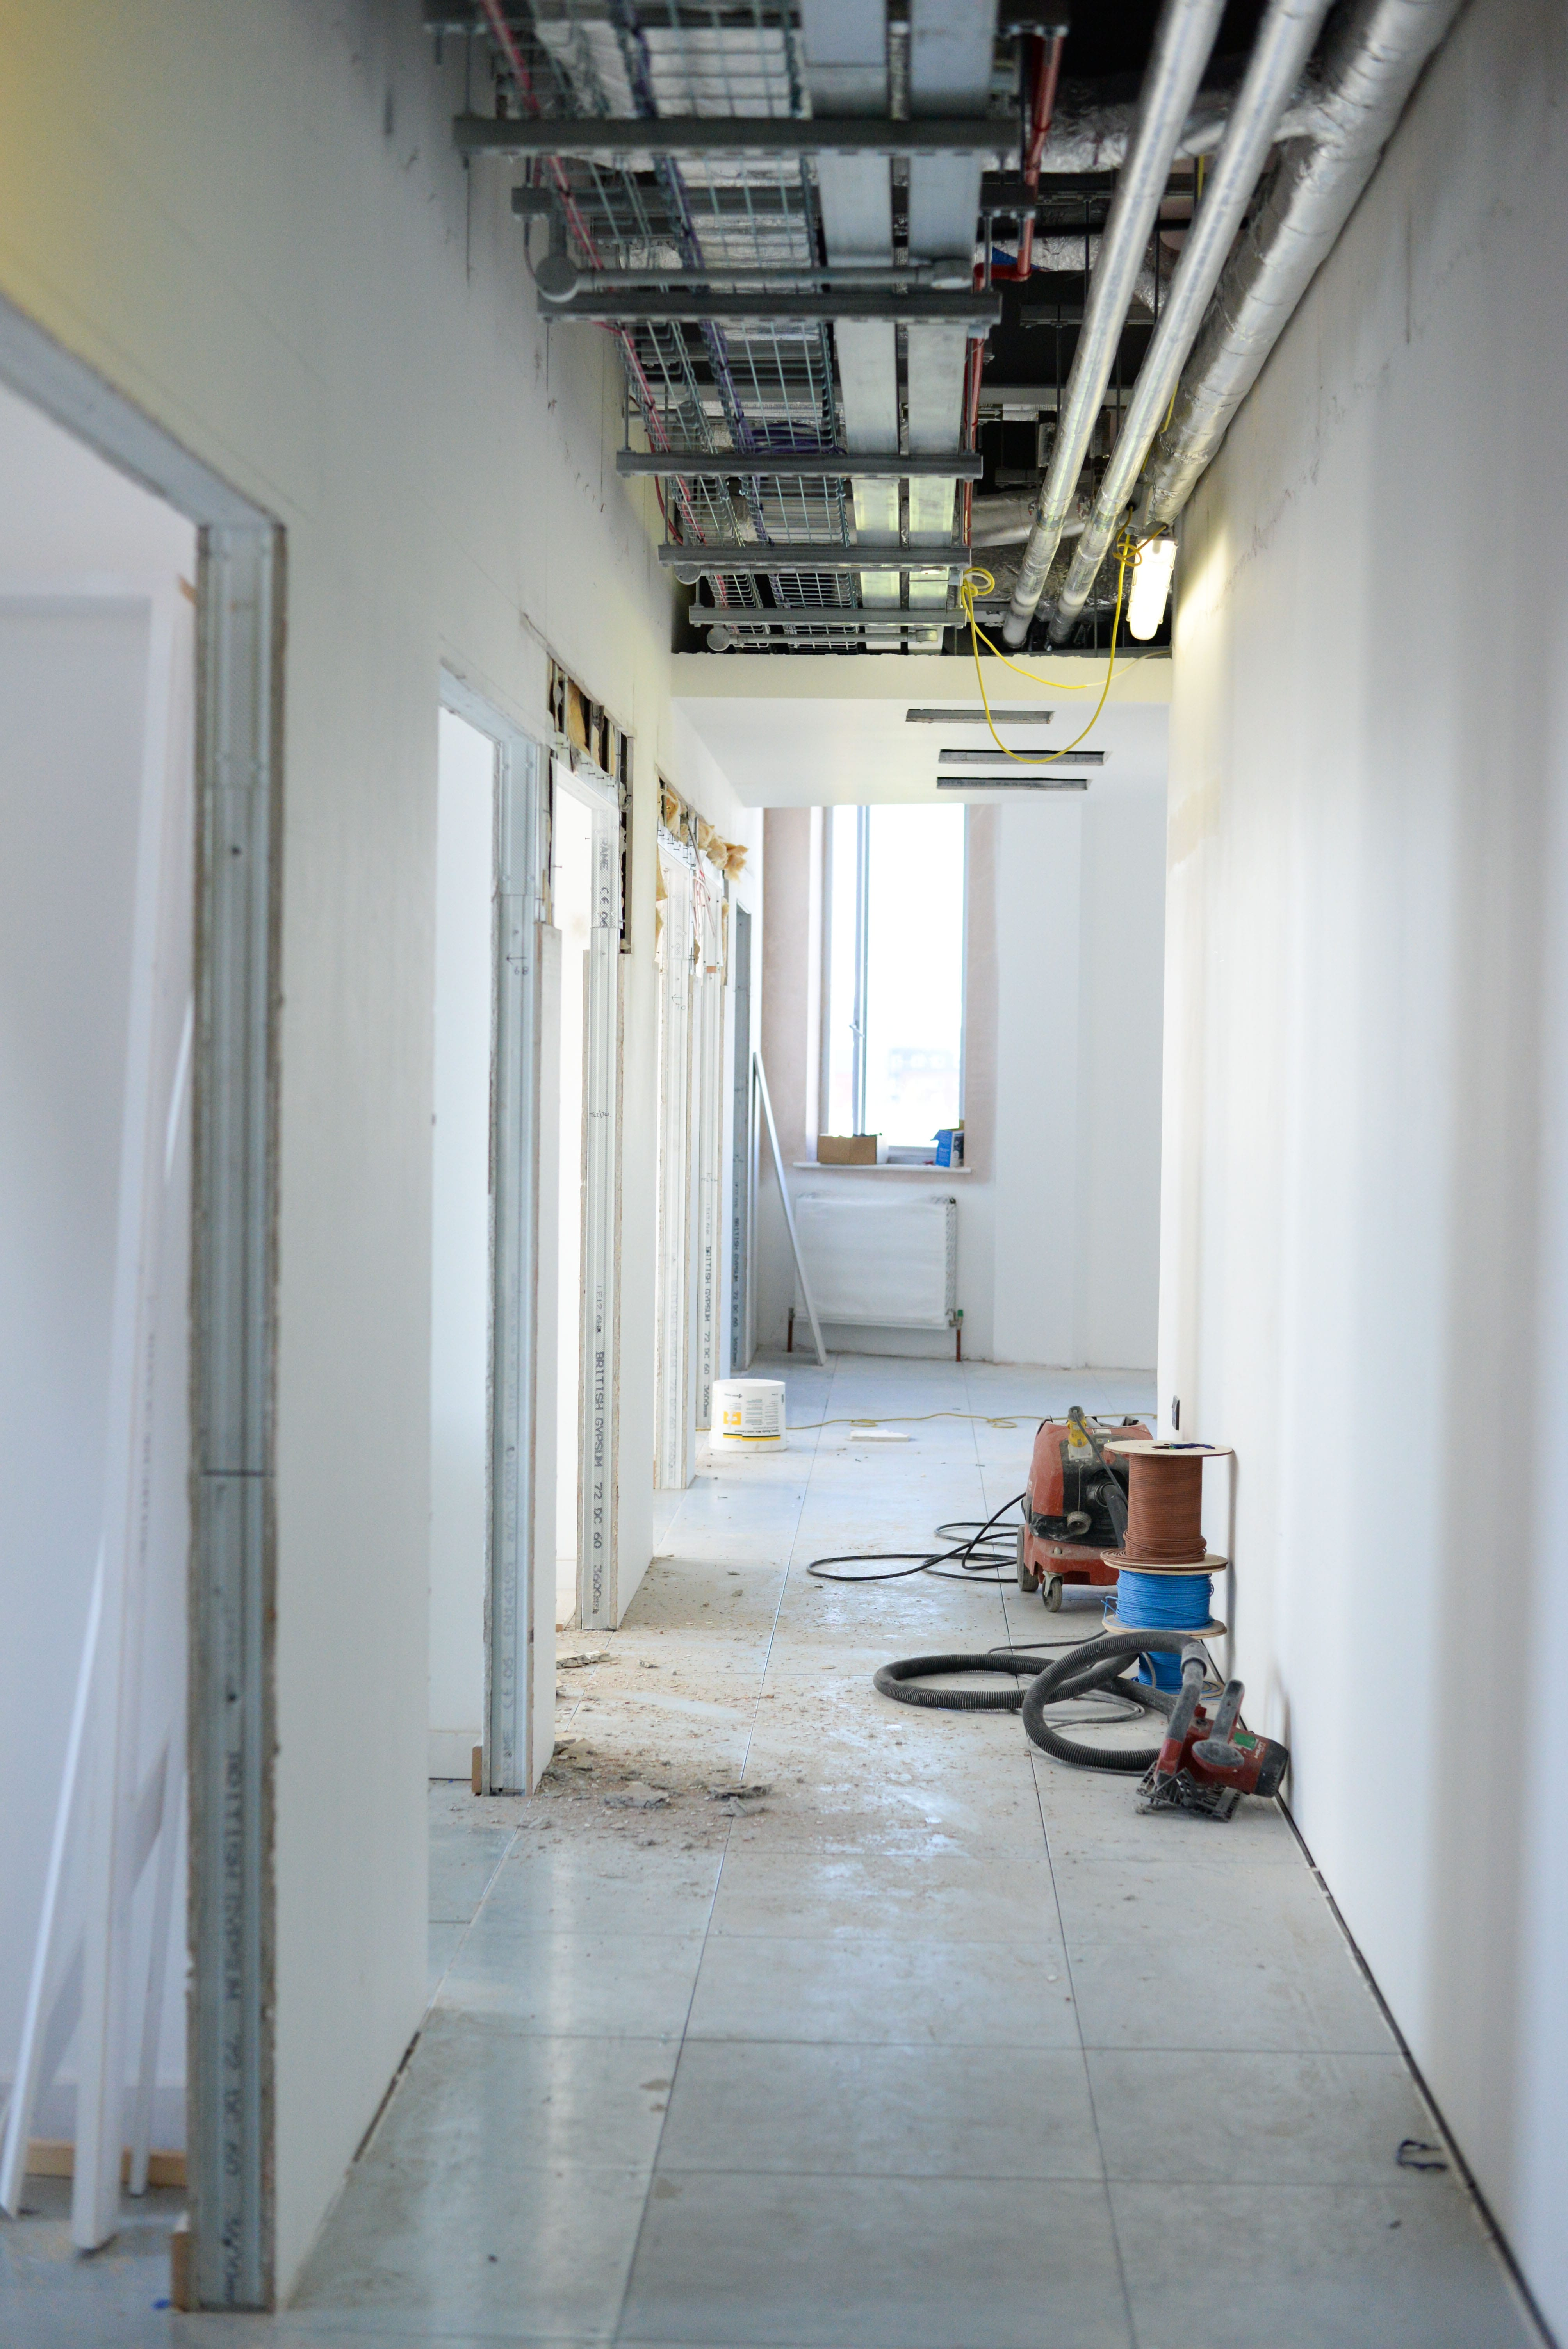 Image of a corridor in construction, the walls have been plastered